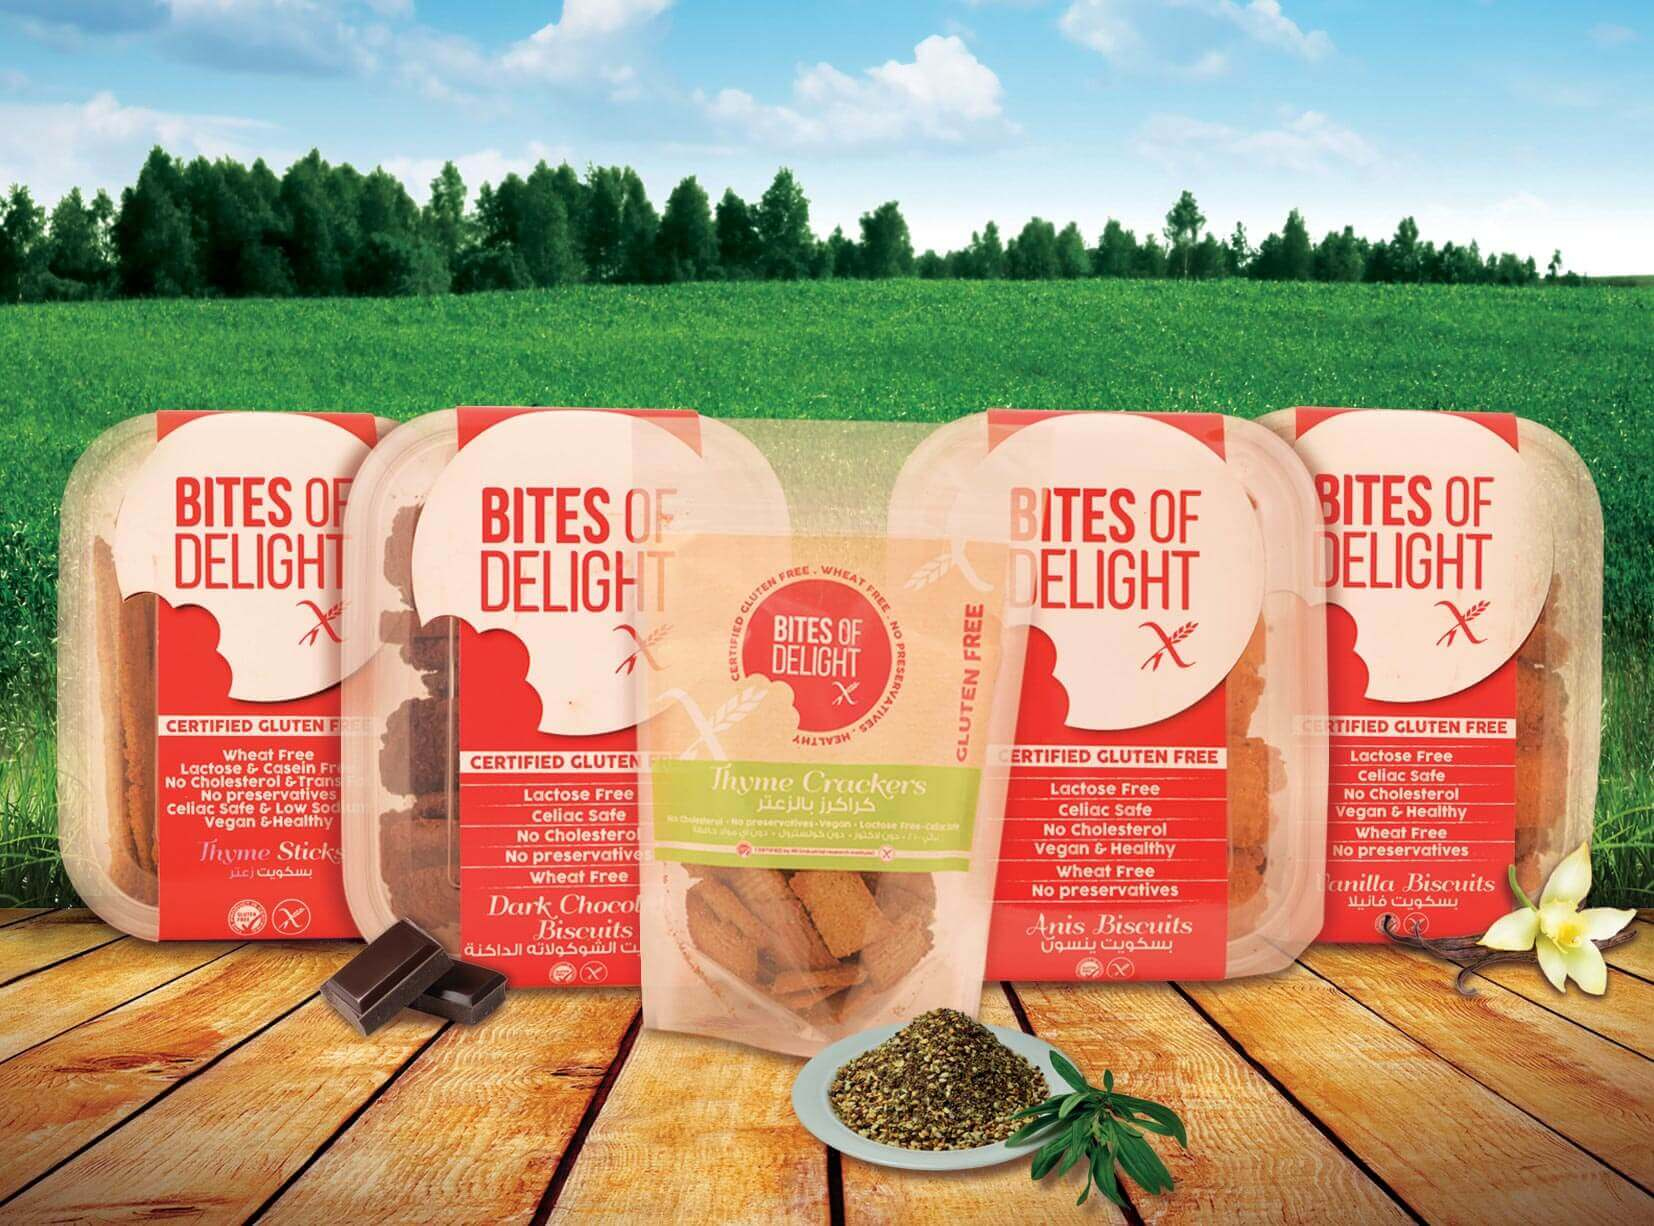 Bites of delight product line